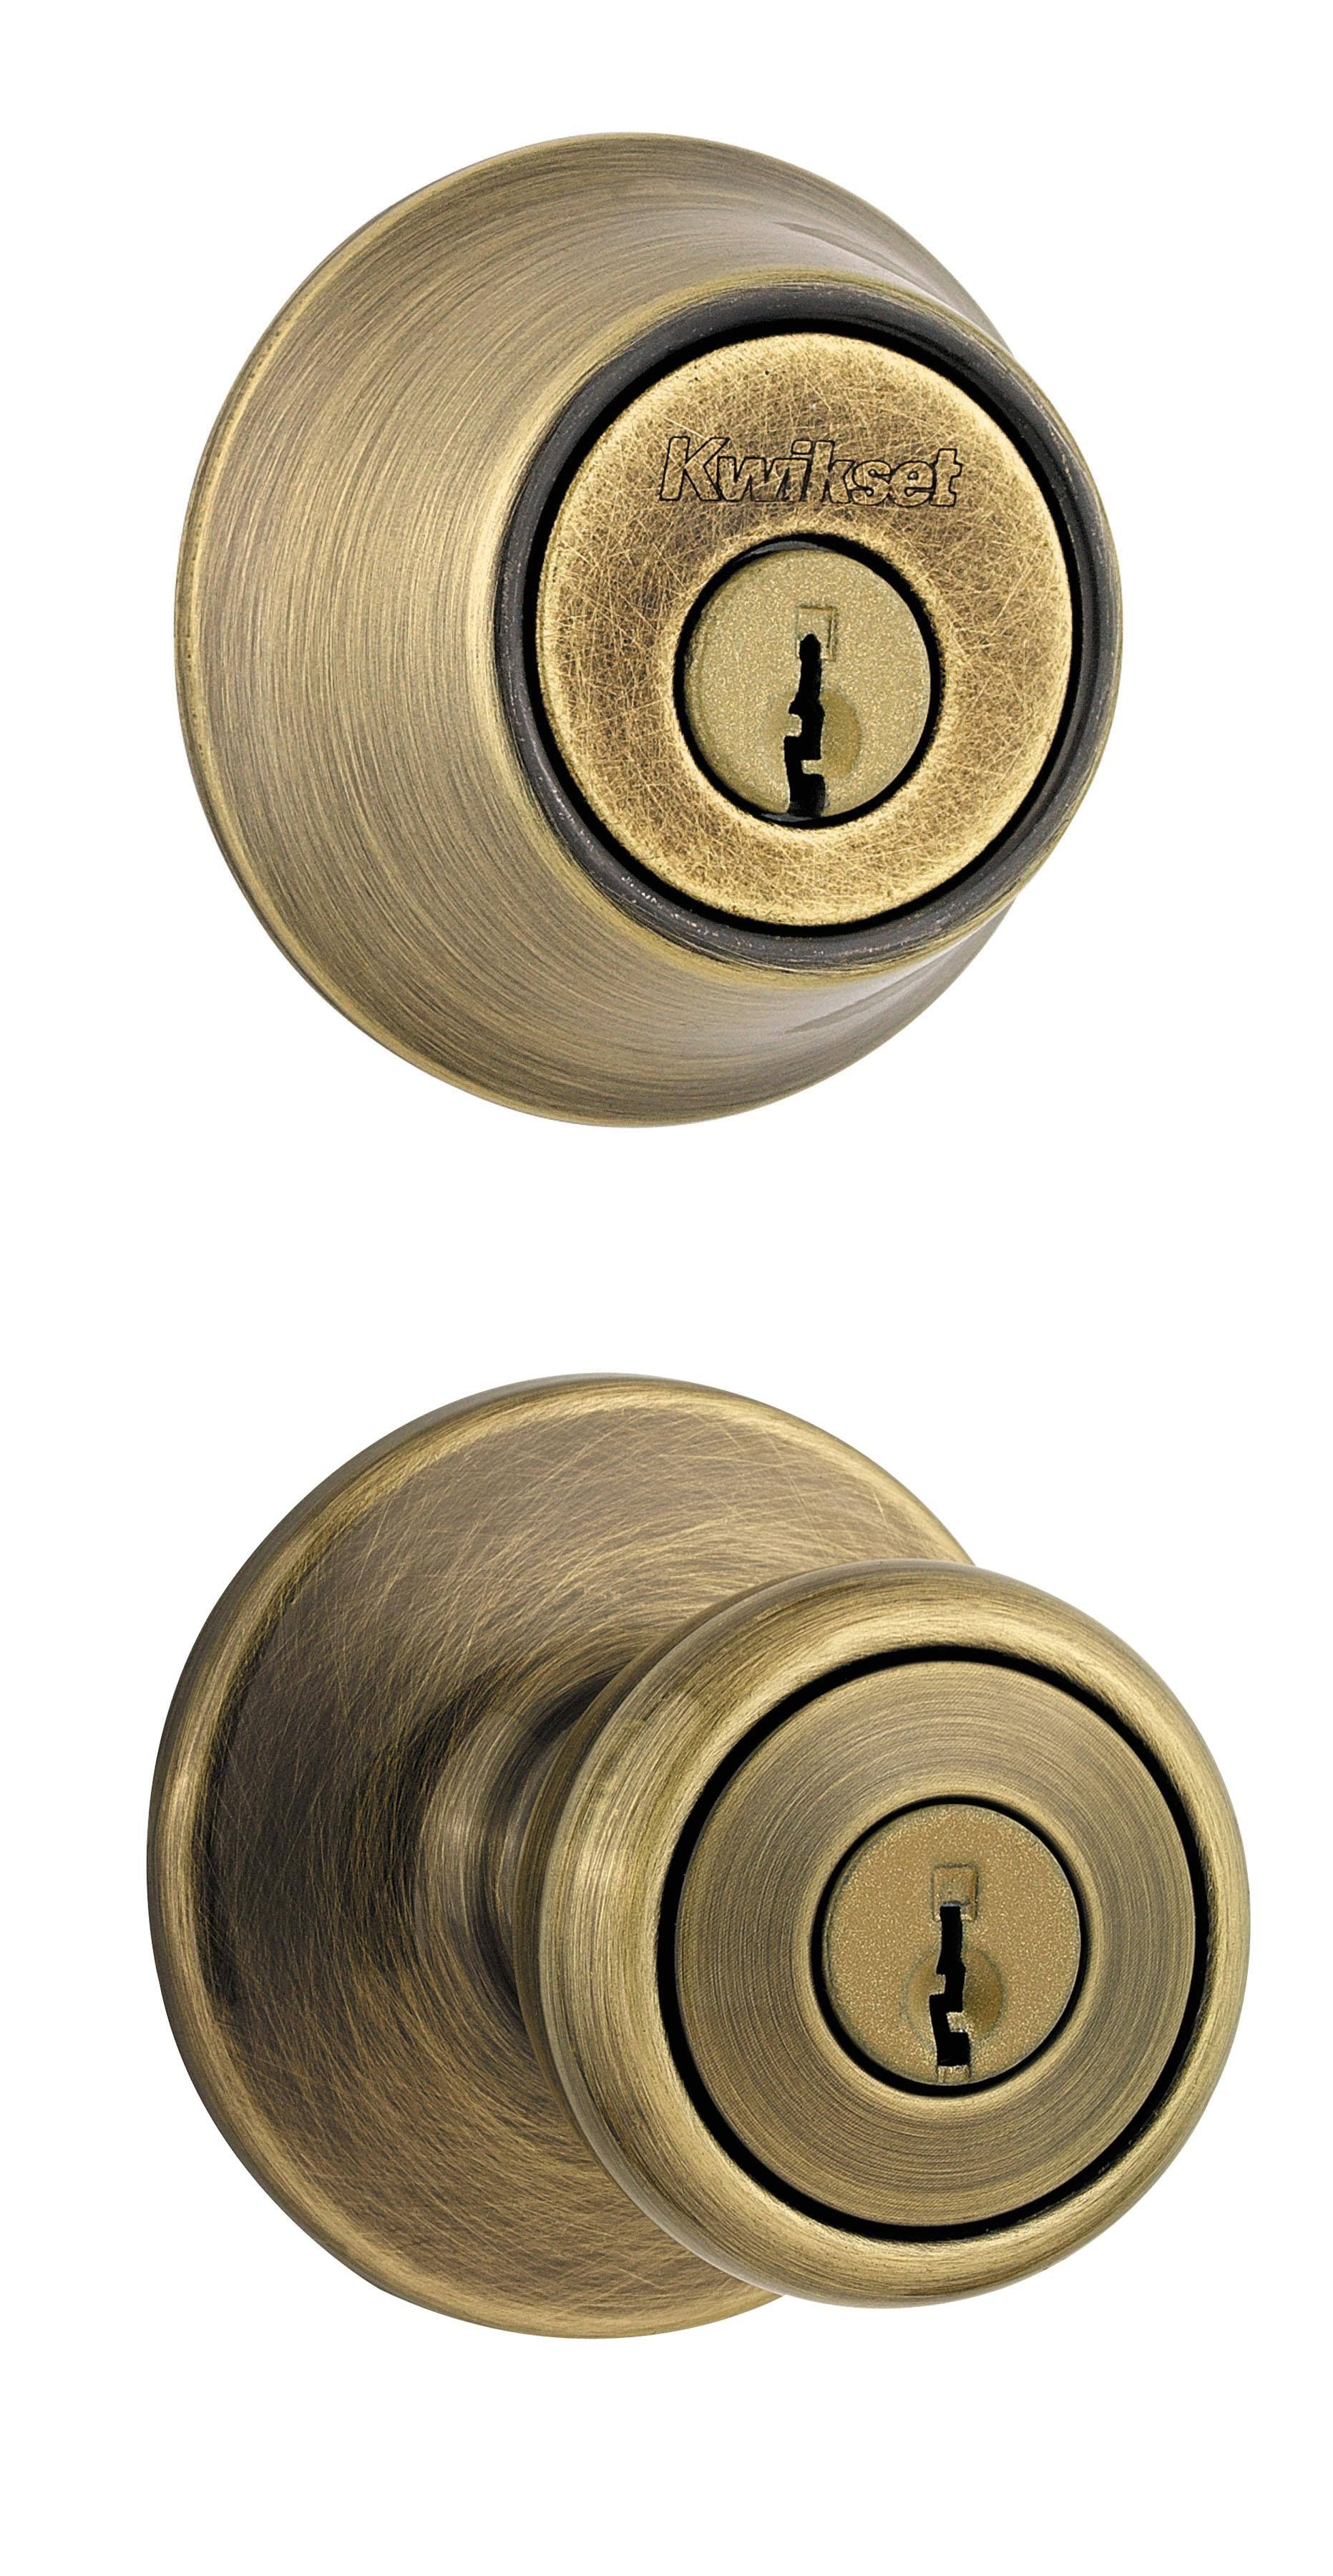 Kwikset Tylo Combo Antique Brass